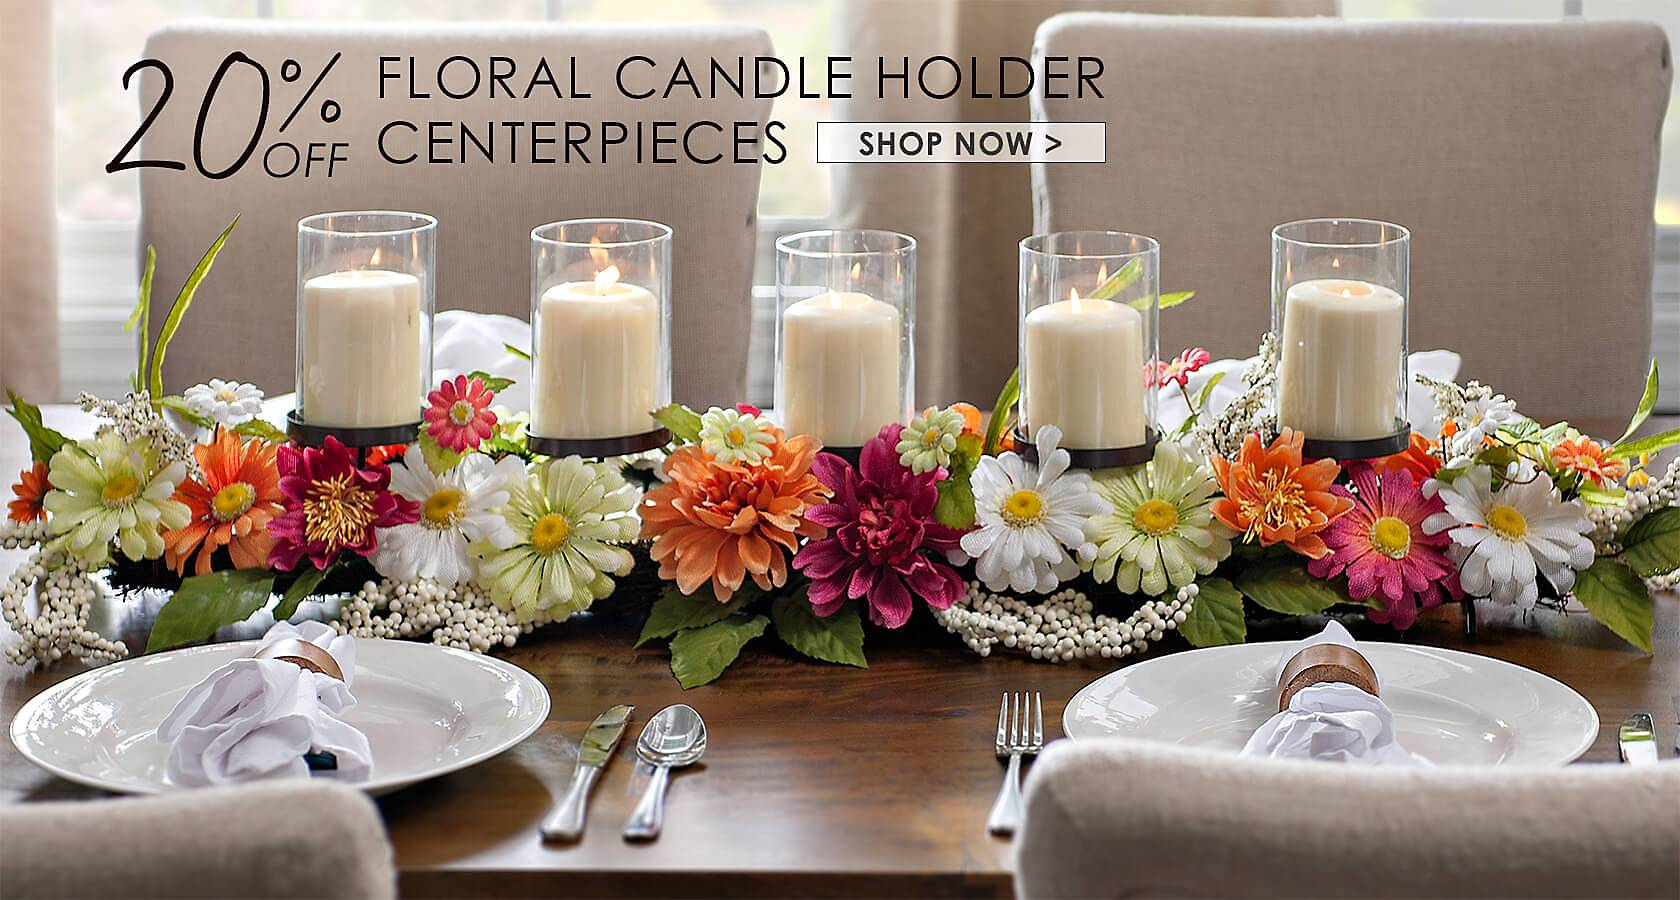 20% Off Centerpieces - Shop Now